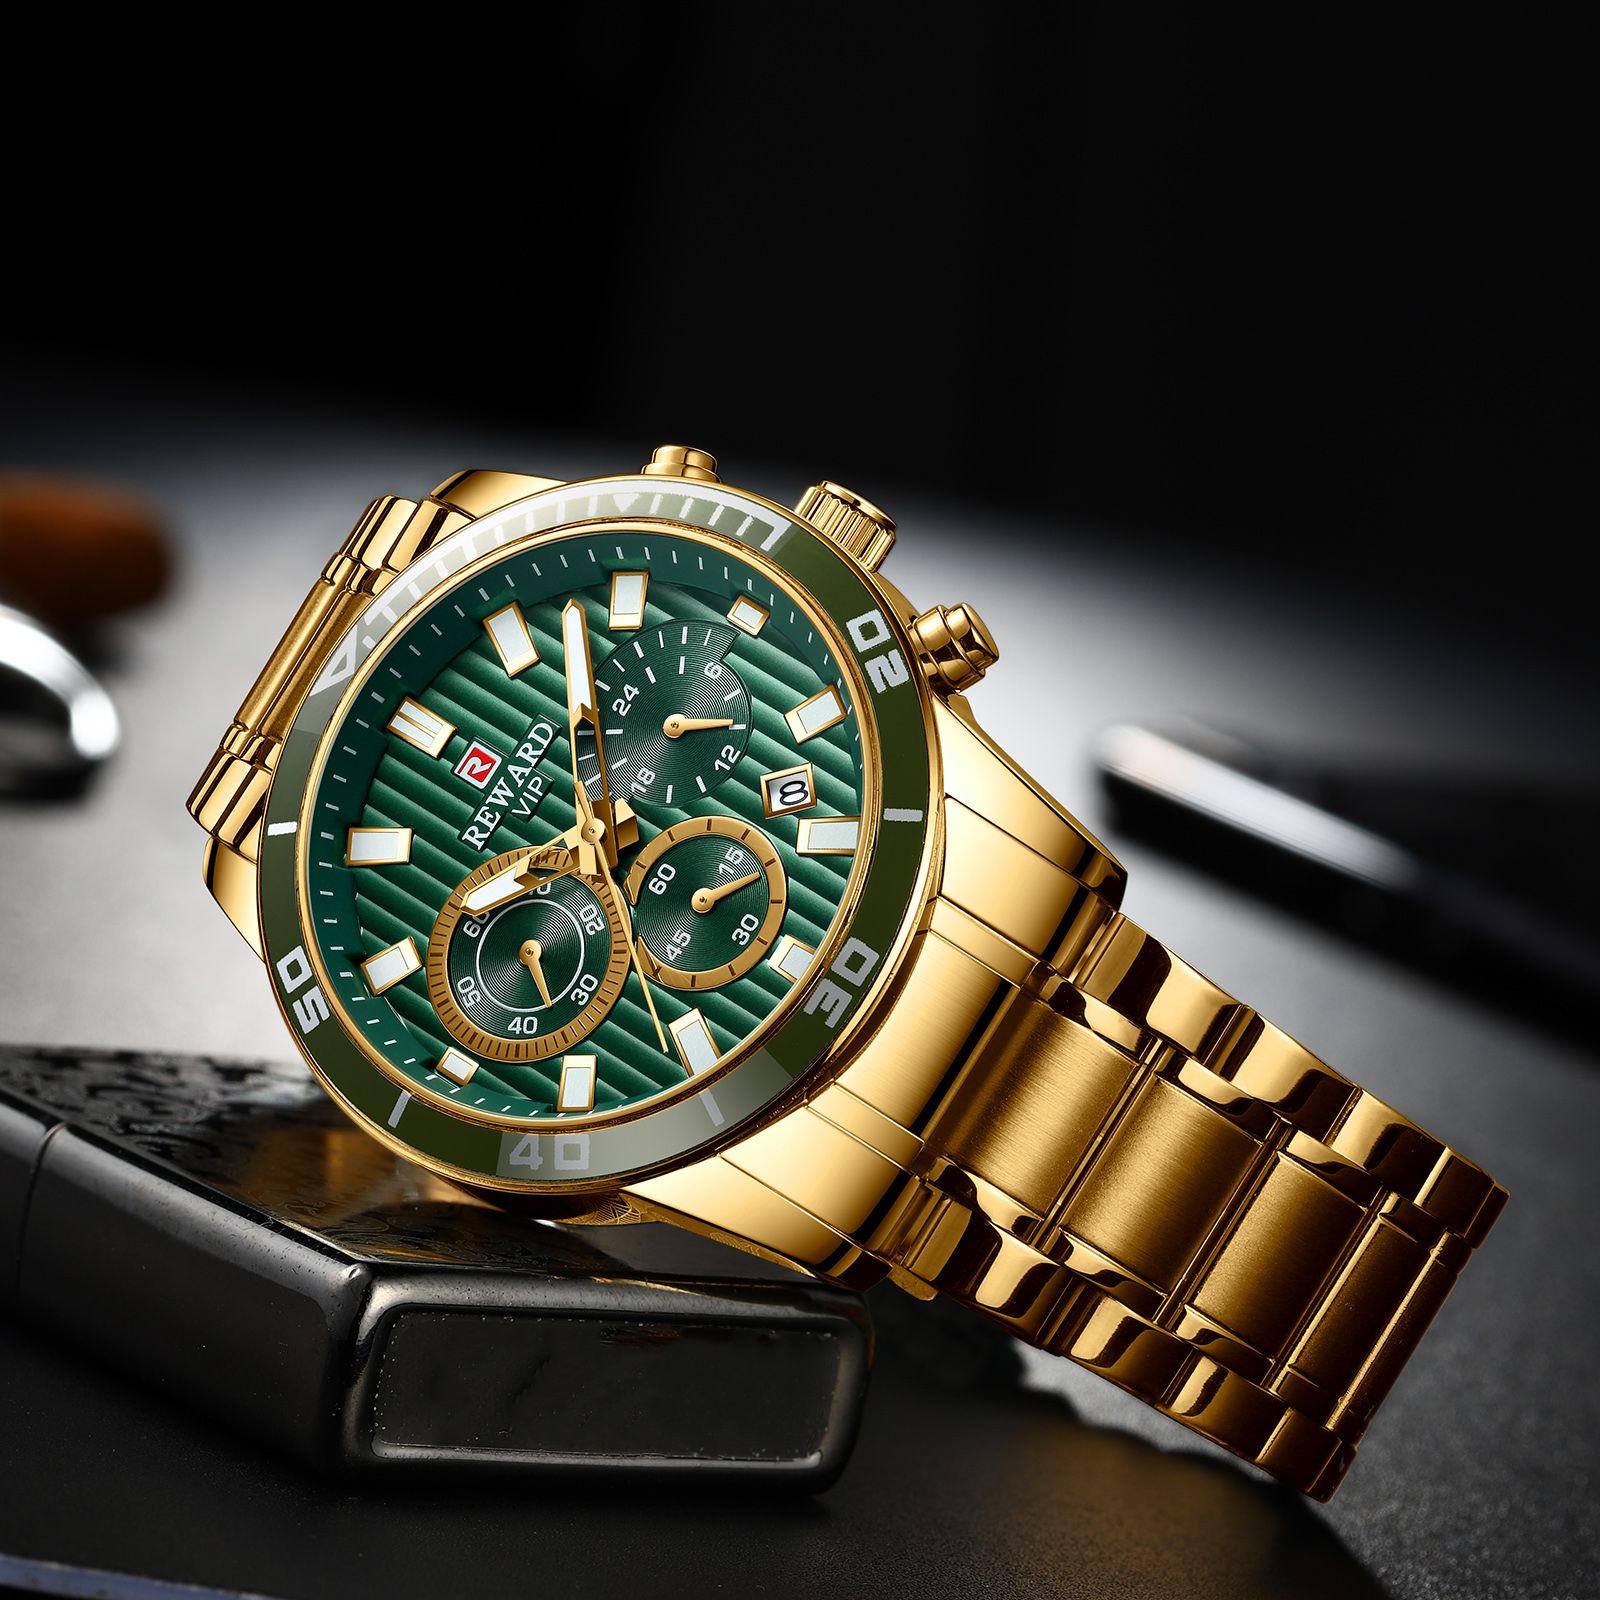 Hot Sale Classic Design Top Brand Luxury Watch Men Fashion Gold Green Men's Watch Multifunction Sport Watches Relogio Masculino